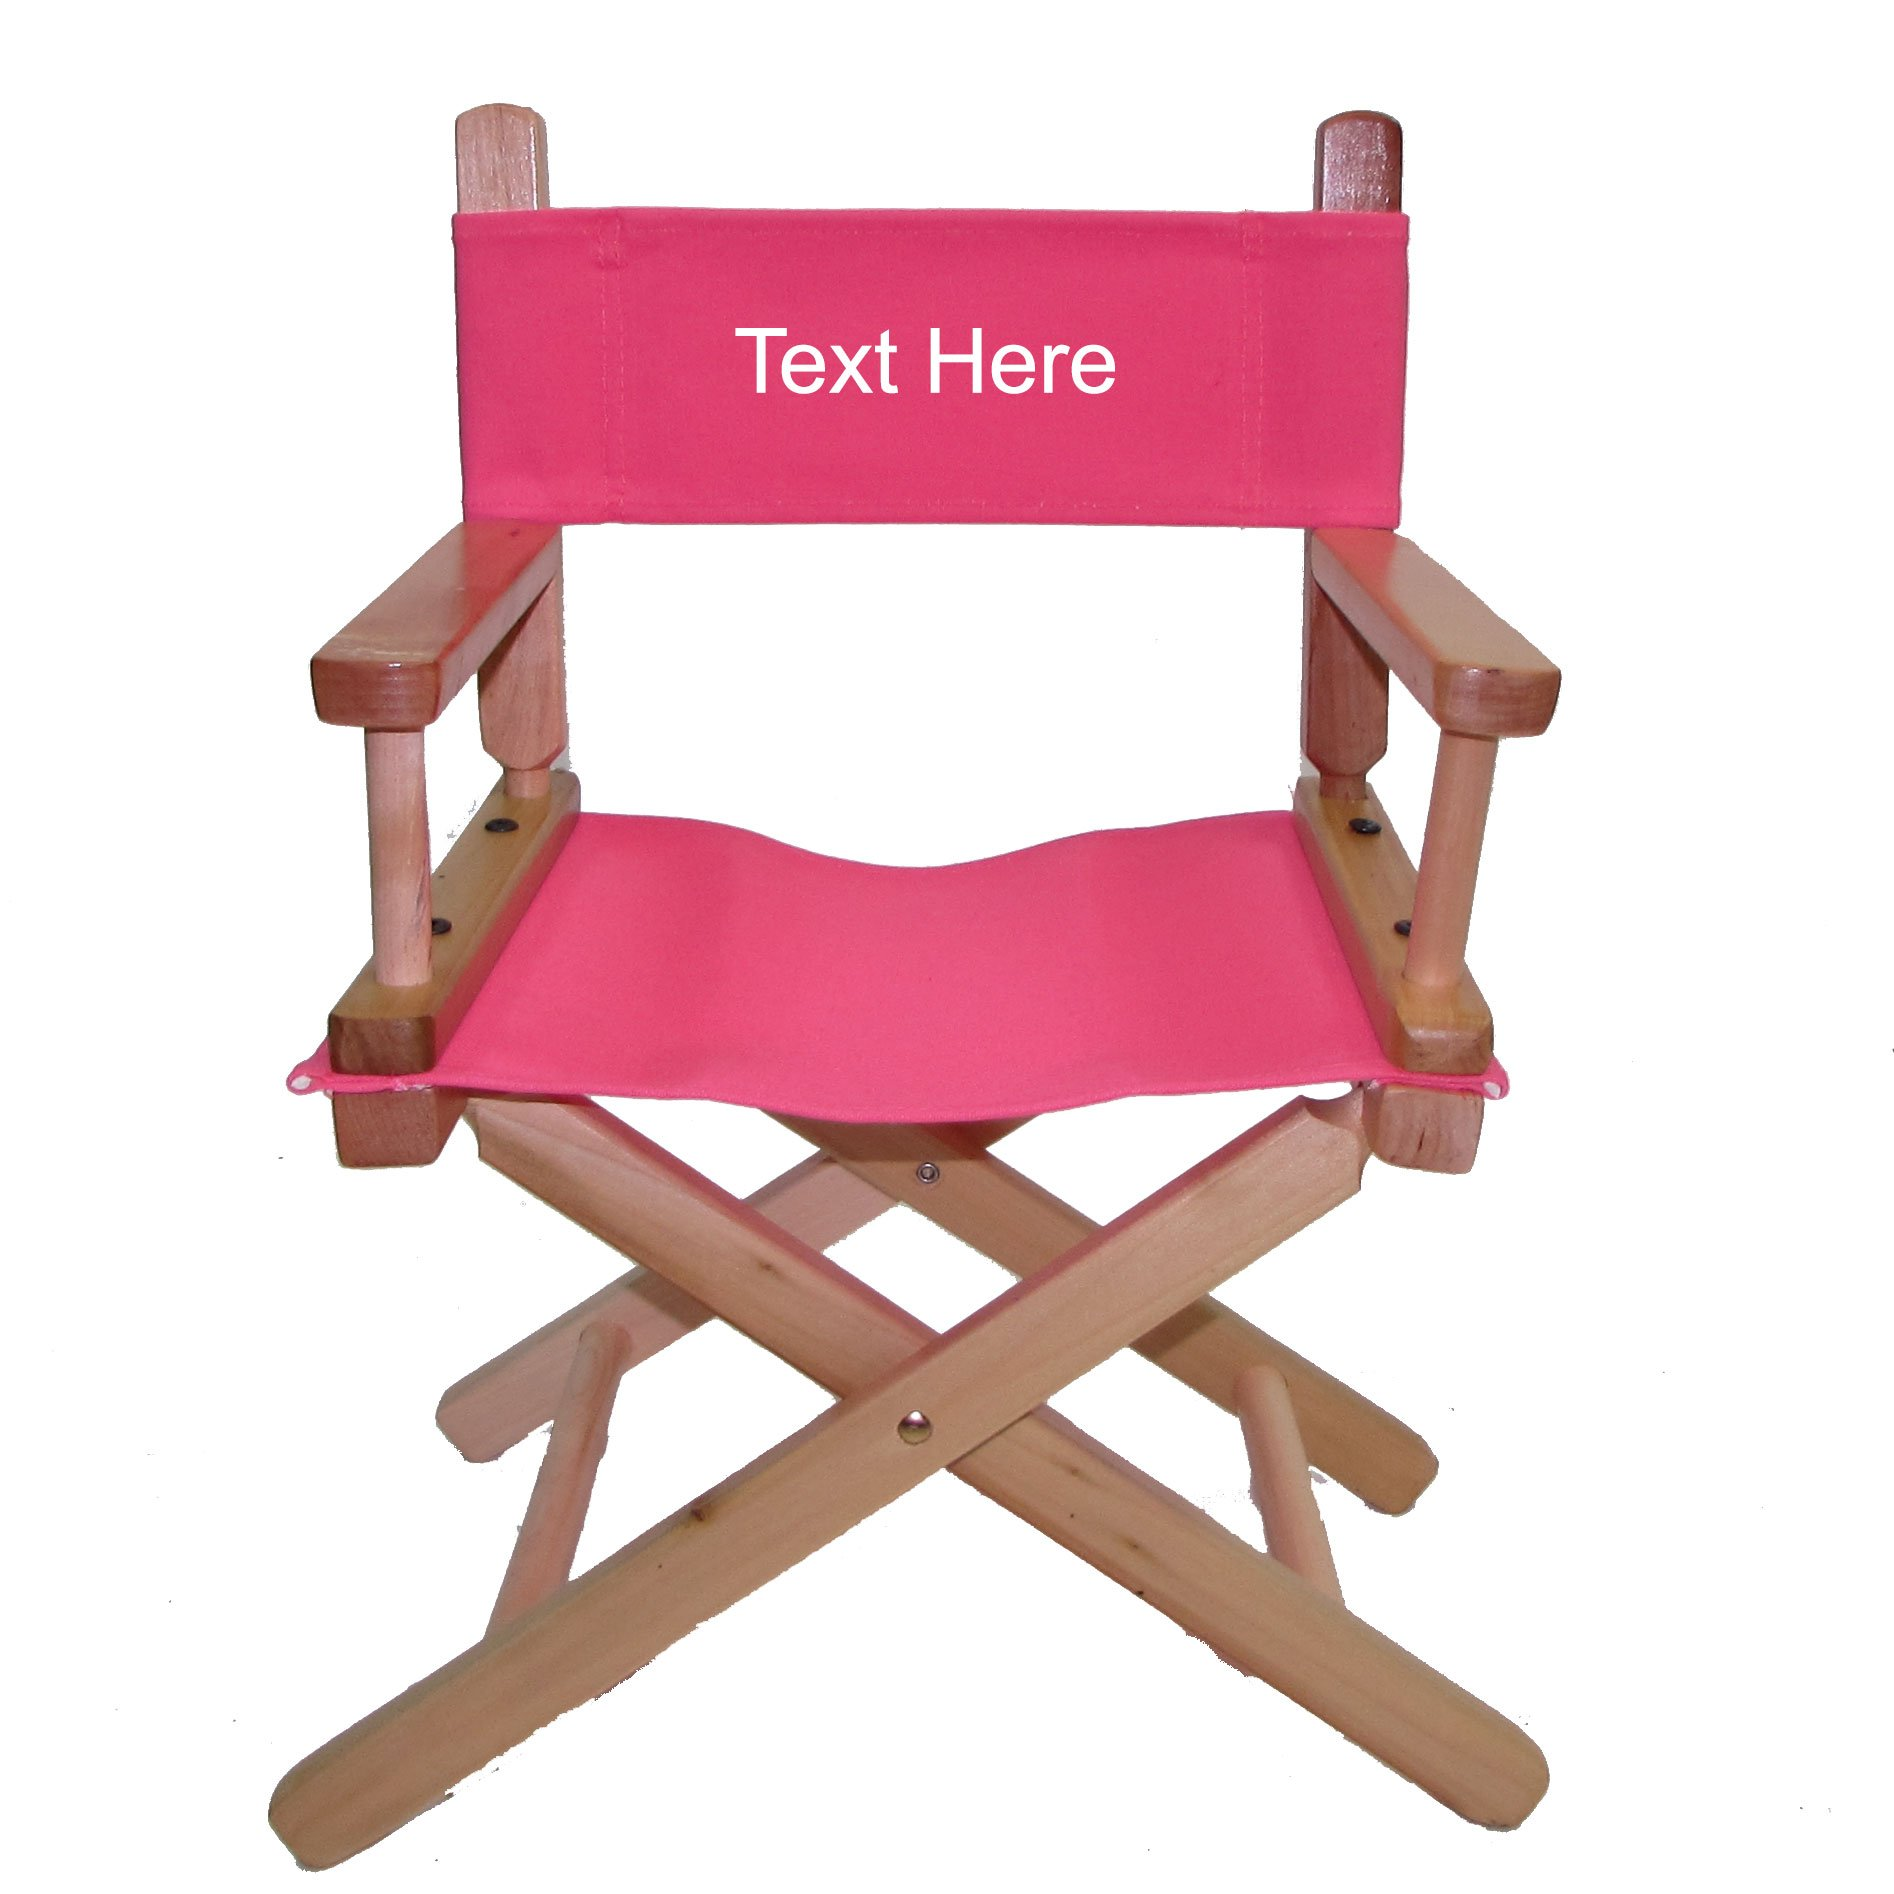 PERSONALIZED EMBROIDERED Natural Frame Toddler's Directors Chair by Gold Medal - Pink Canvas